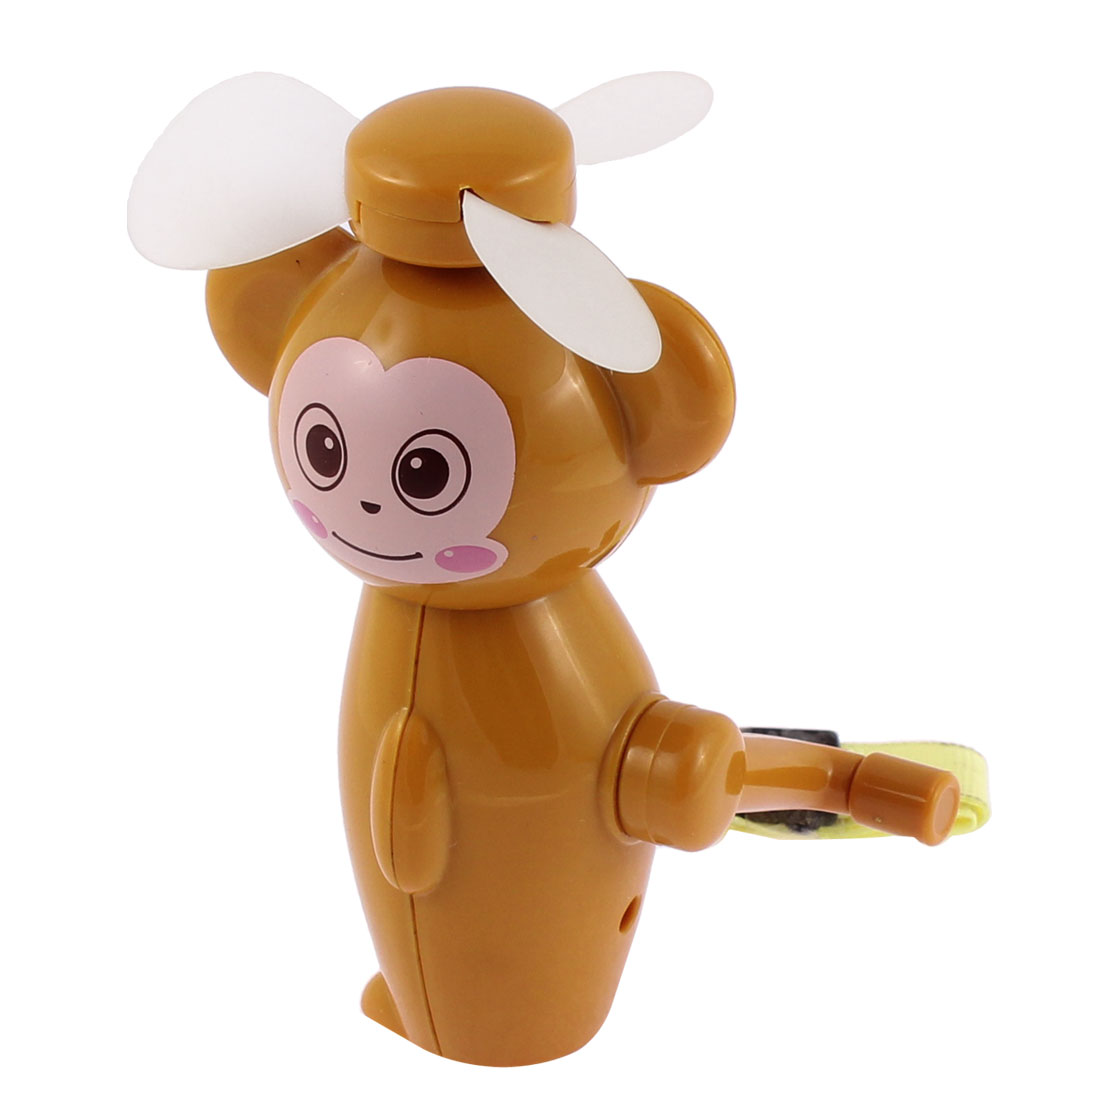 Handheld Plastic Monkey Design Hand Crank Mini Cooling Fan Cooler Brown